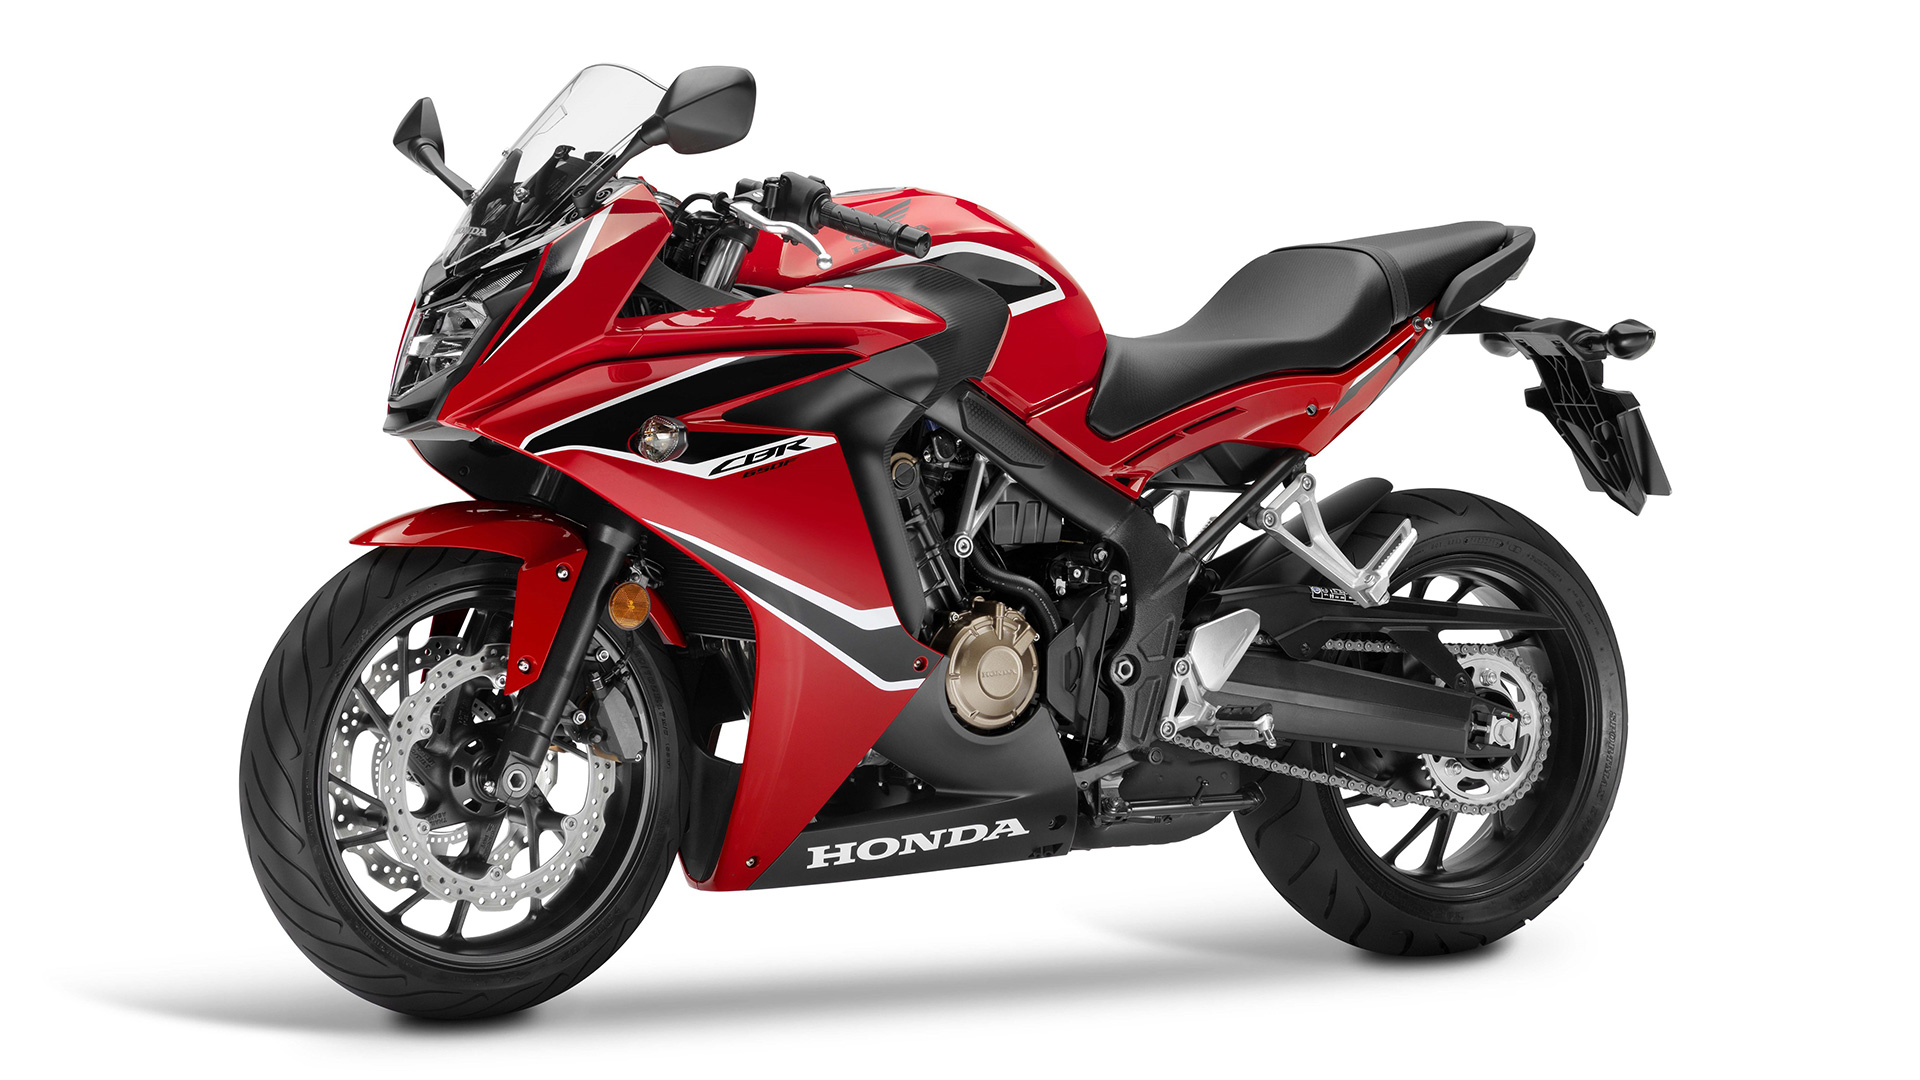 Honda Cbr650f 2017 Price Mileage Reviews